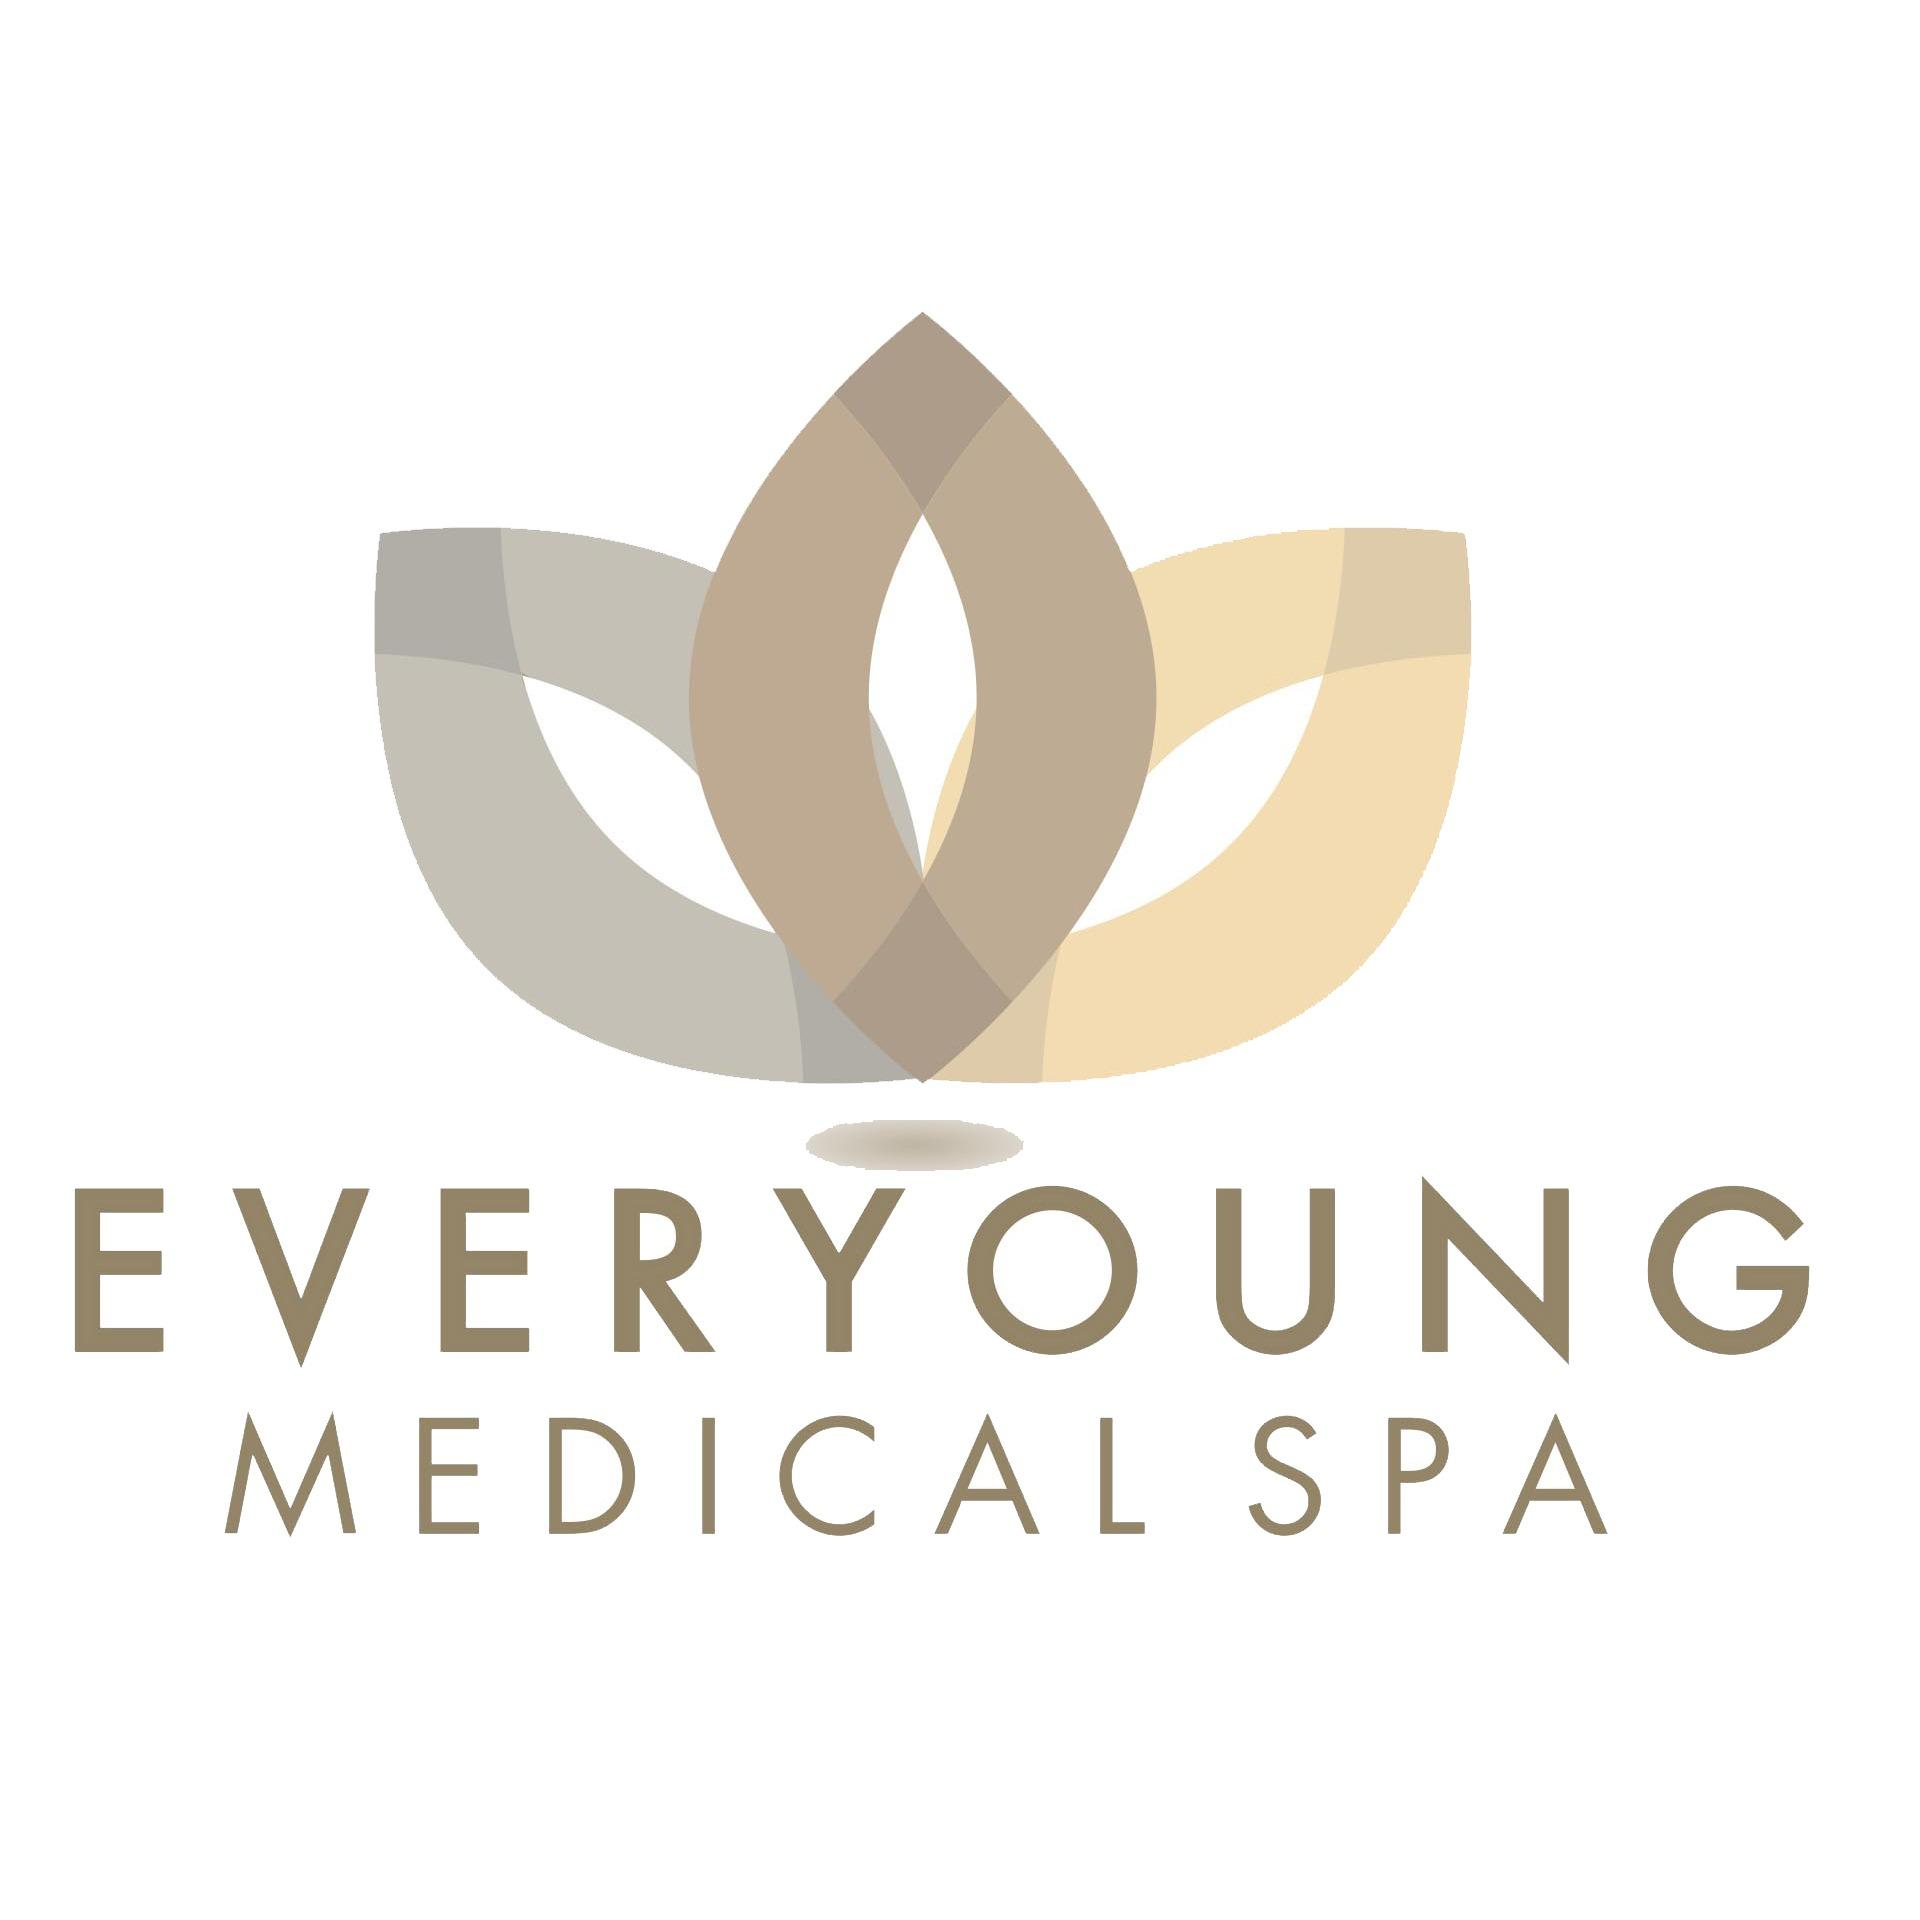 Everyoung Medical Spa